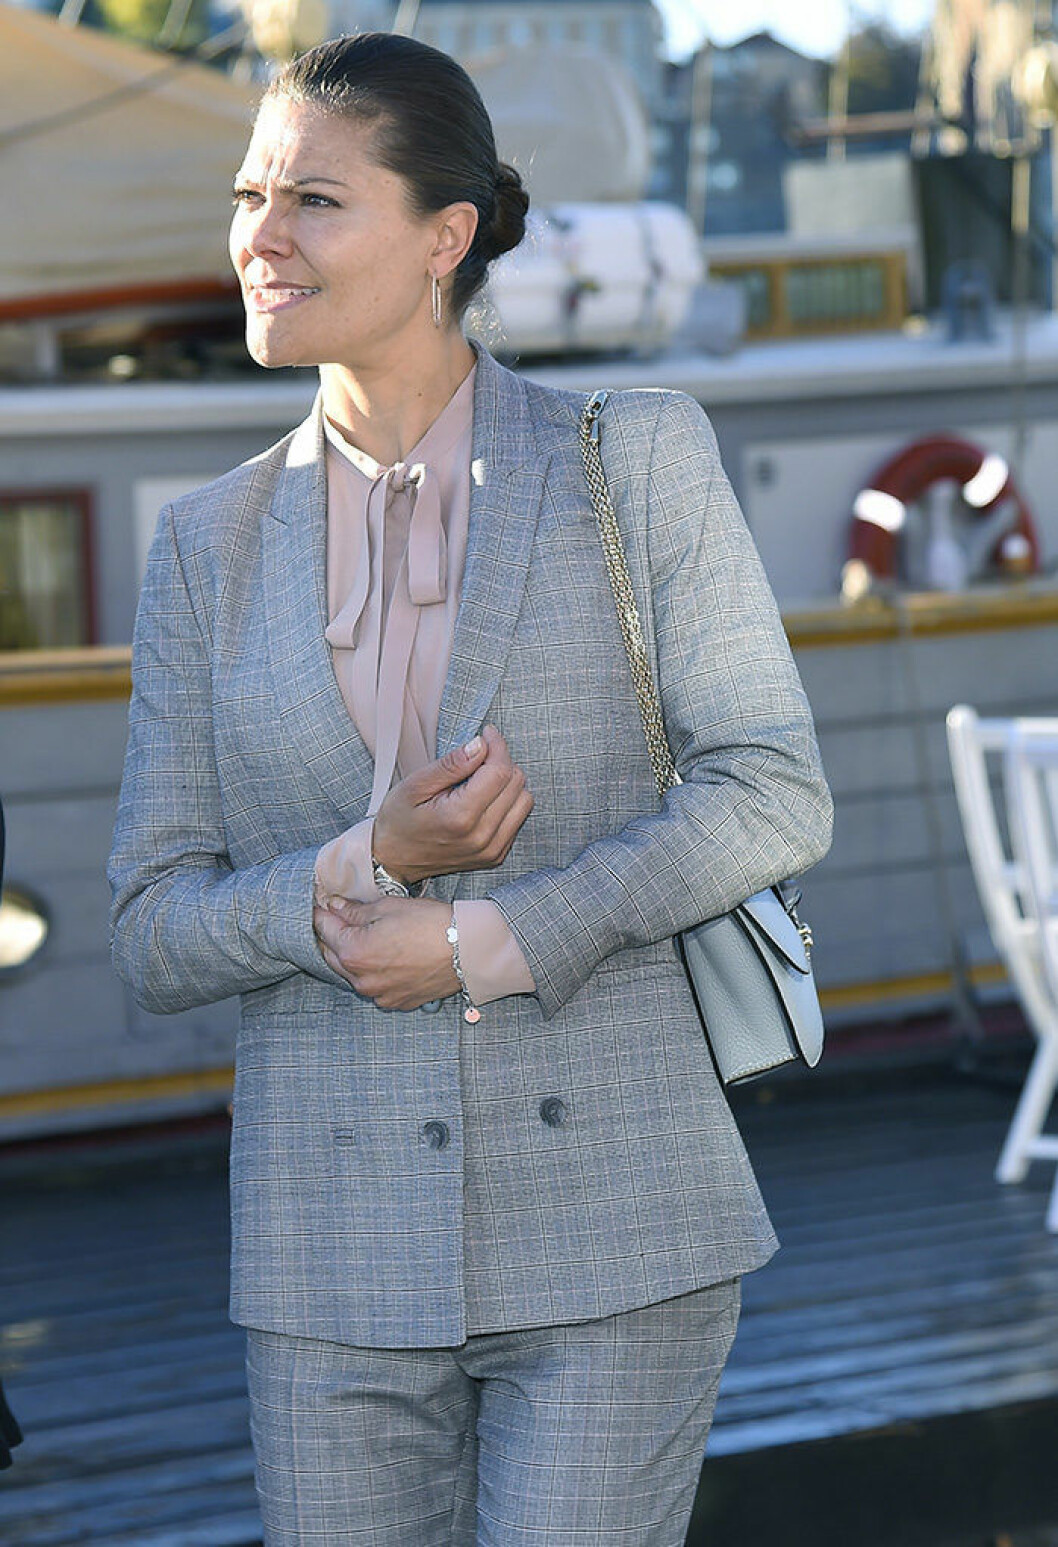 Crown princess Victoria Attendance at the Brig Tre Kronor's and the Sustainable Seas Initiative's Baltic Sea Seminar, Skeppsholmen, Stockholm, 2016-10-03 (c) Karin Tˆrnblom / IBL